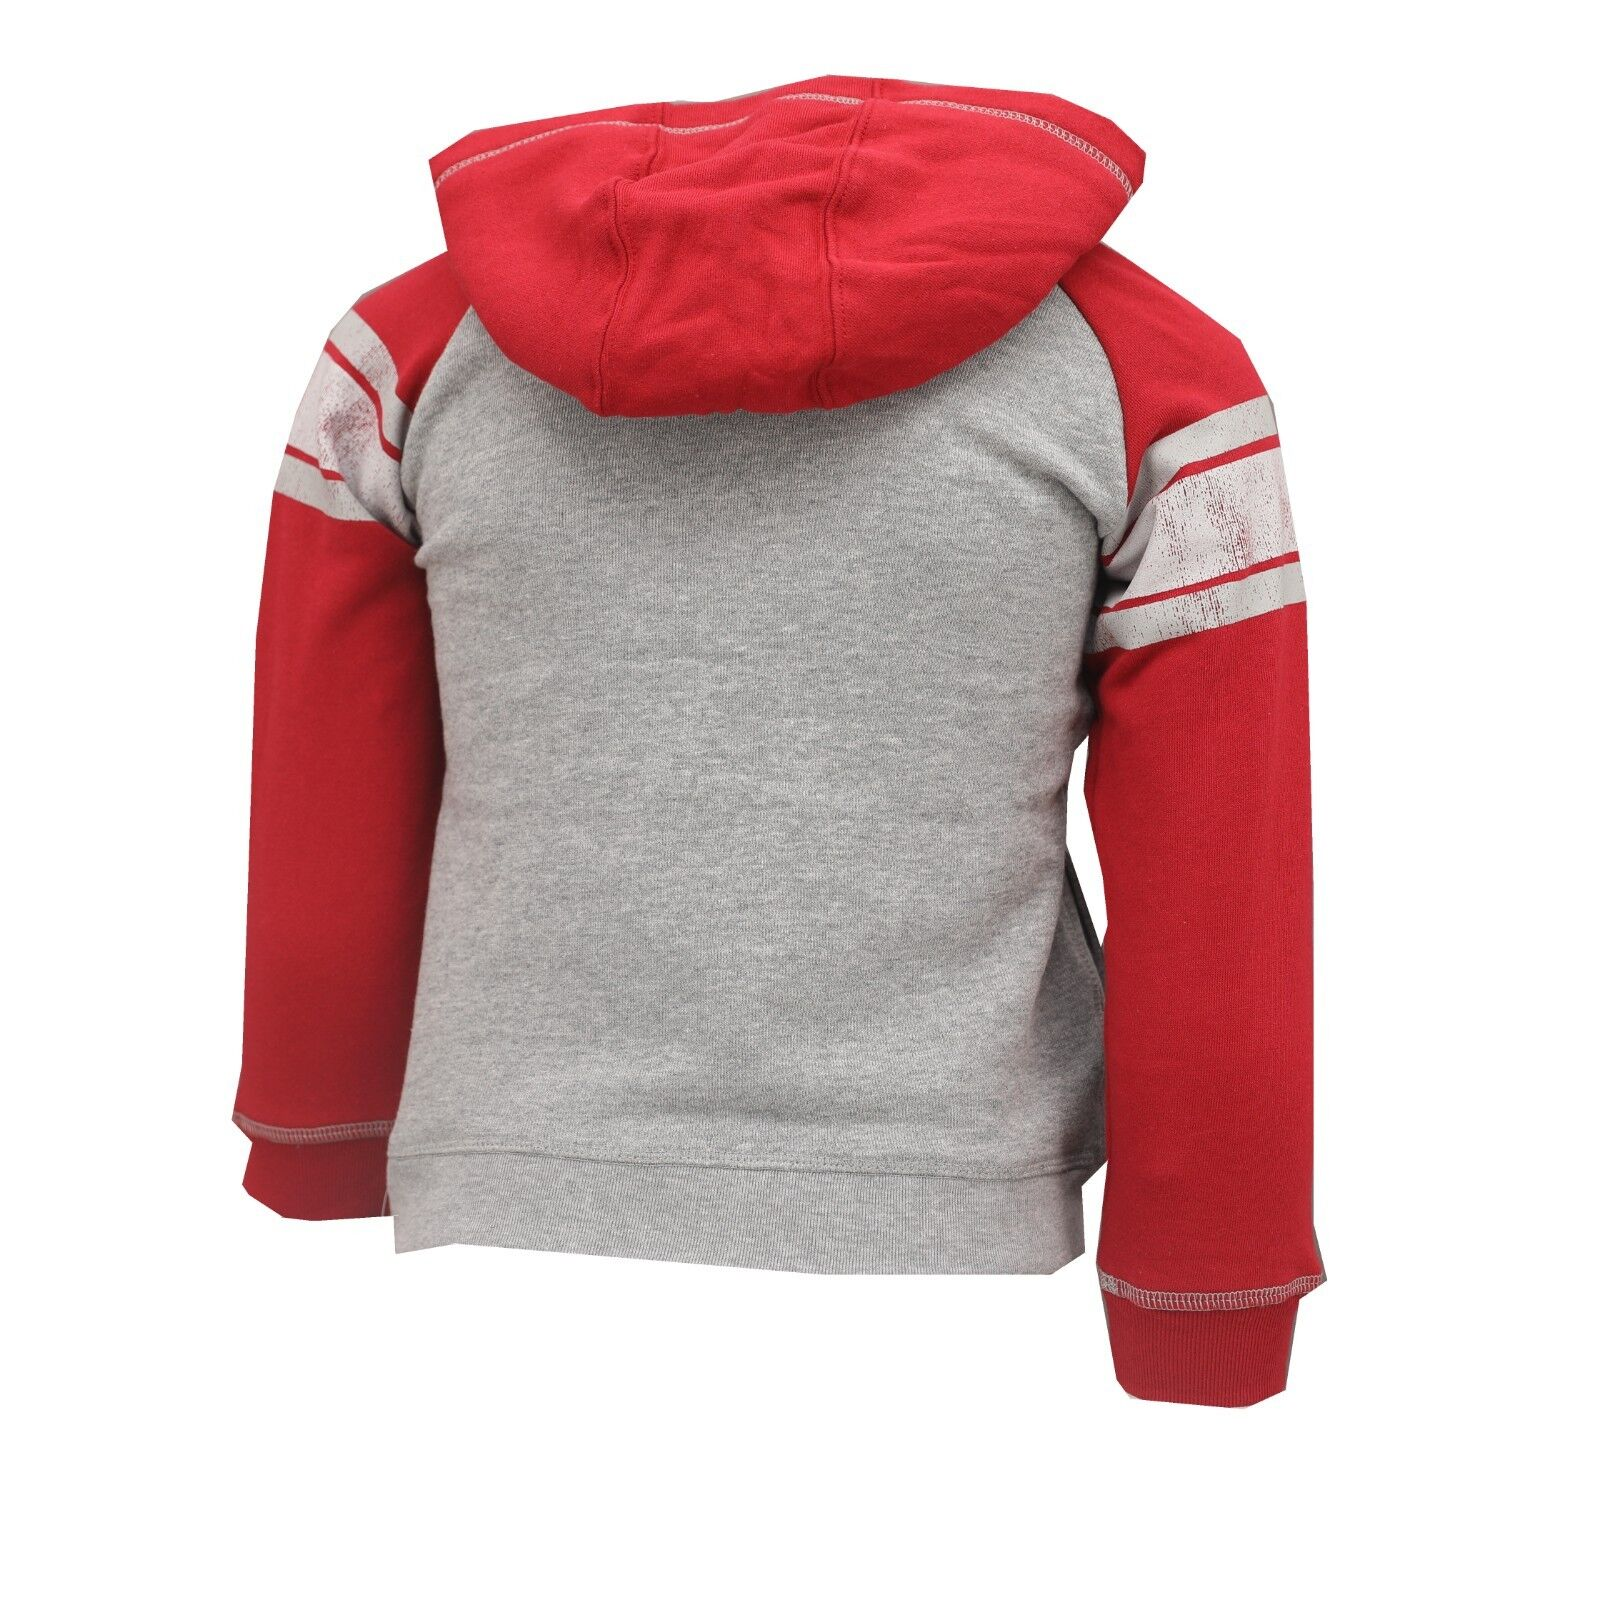 ce09d257dd6f Details about Oklahoma Sooners Official NCAA Youth Kids Size Distressed  Hooded Sweatshirt New